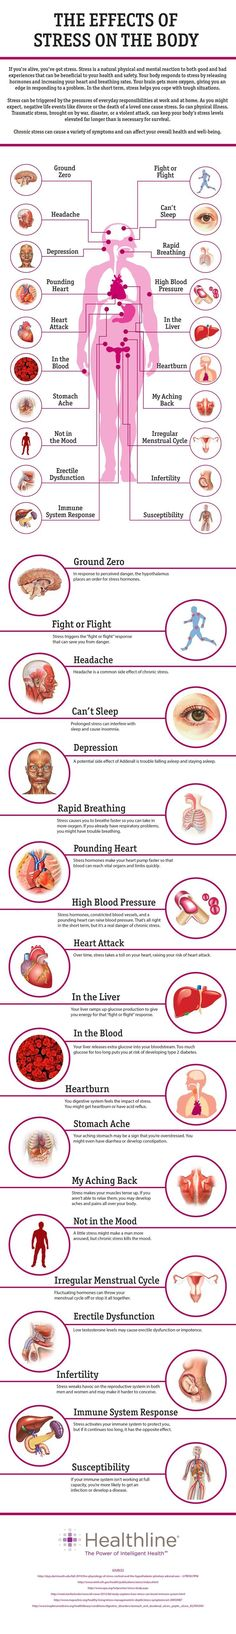 20 Effects Of Stress On The Body=> http://www.healthline.com/health/stress/effects-on-body #stress: